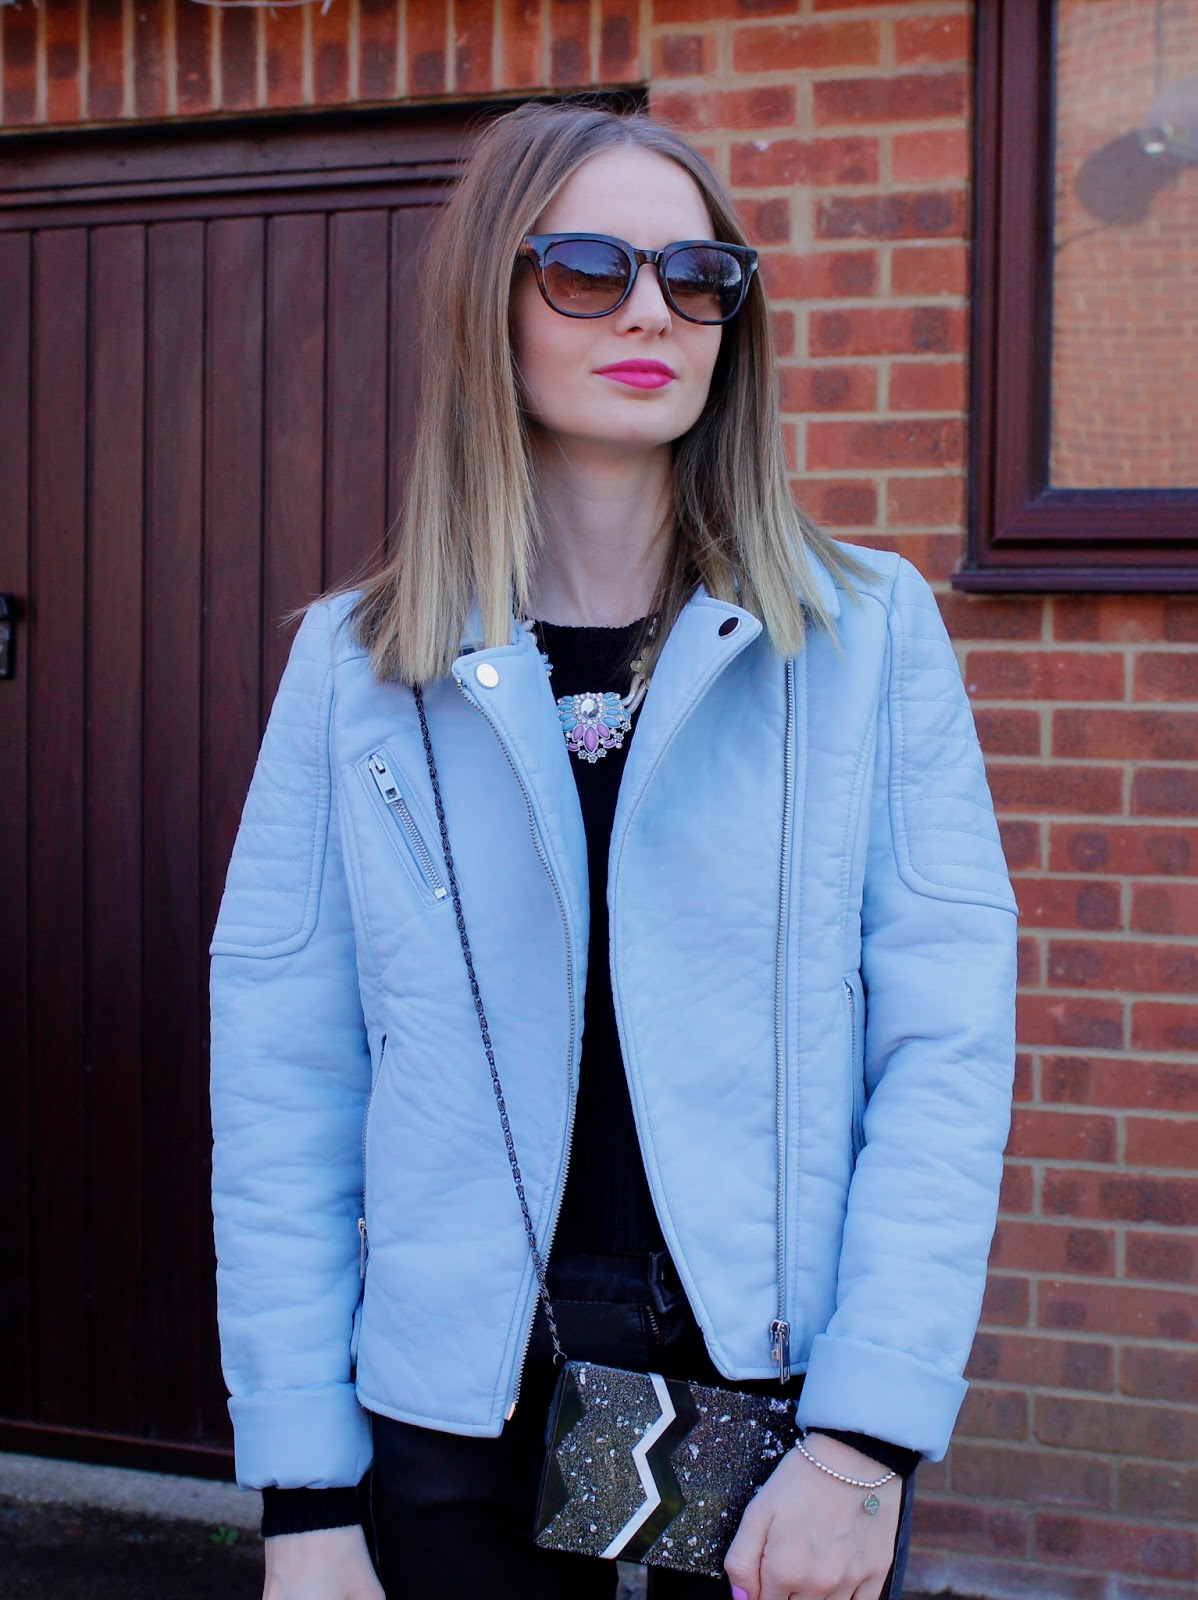 Wearing George at Asda Blue Leather Look Jacket, Warehouse Necklace & Bag